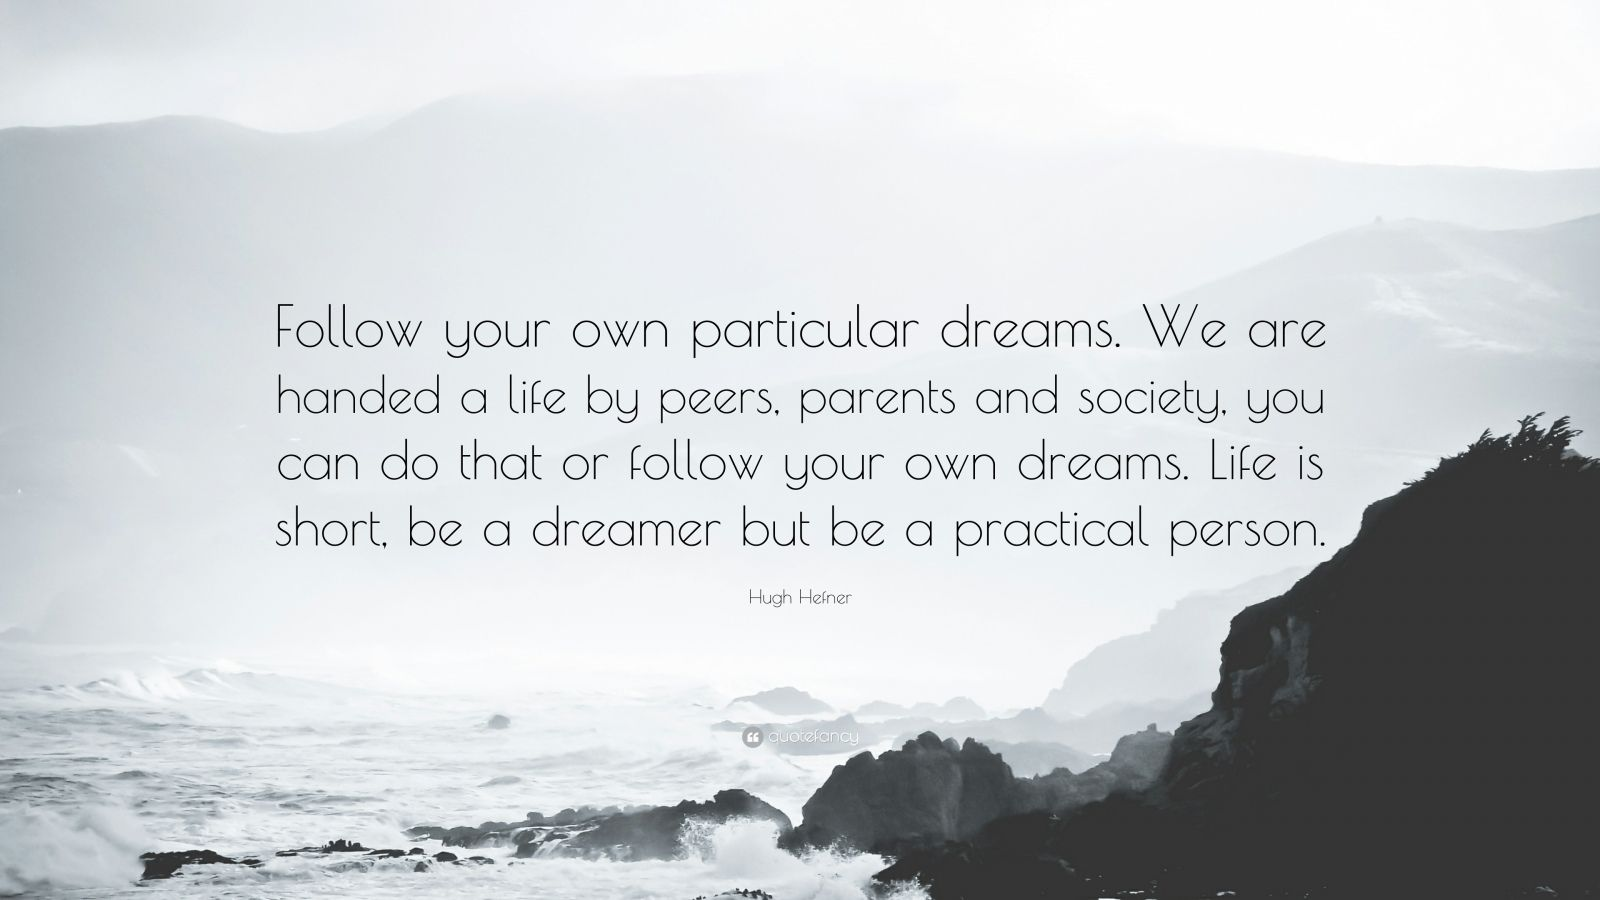 """Hugh Hefner Quote: """"Follow your own particular dreams. We are handed a life by peers, parents and society, you can do that or follow your own dreams. Life is short, be a dreamer but be a practical person."""""""